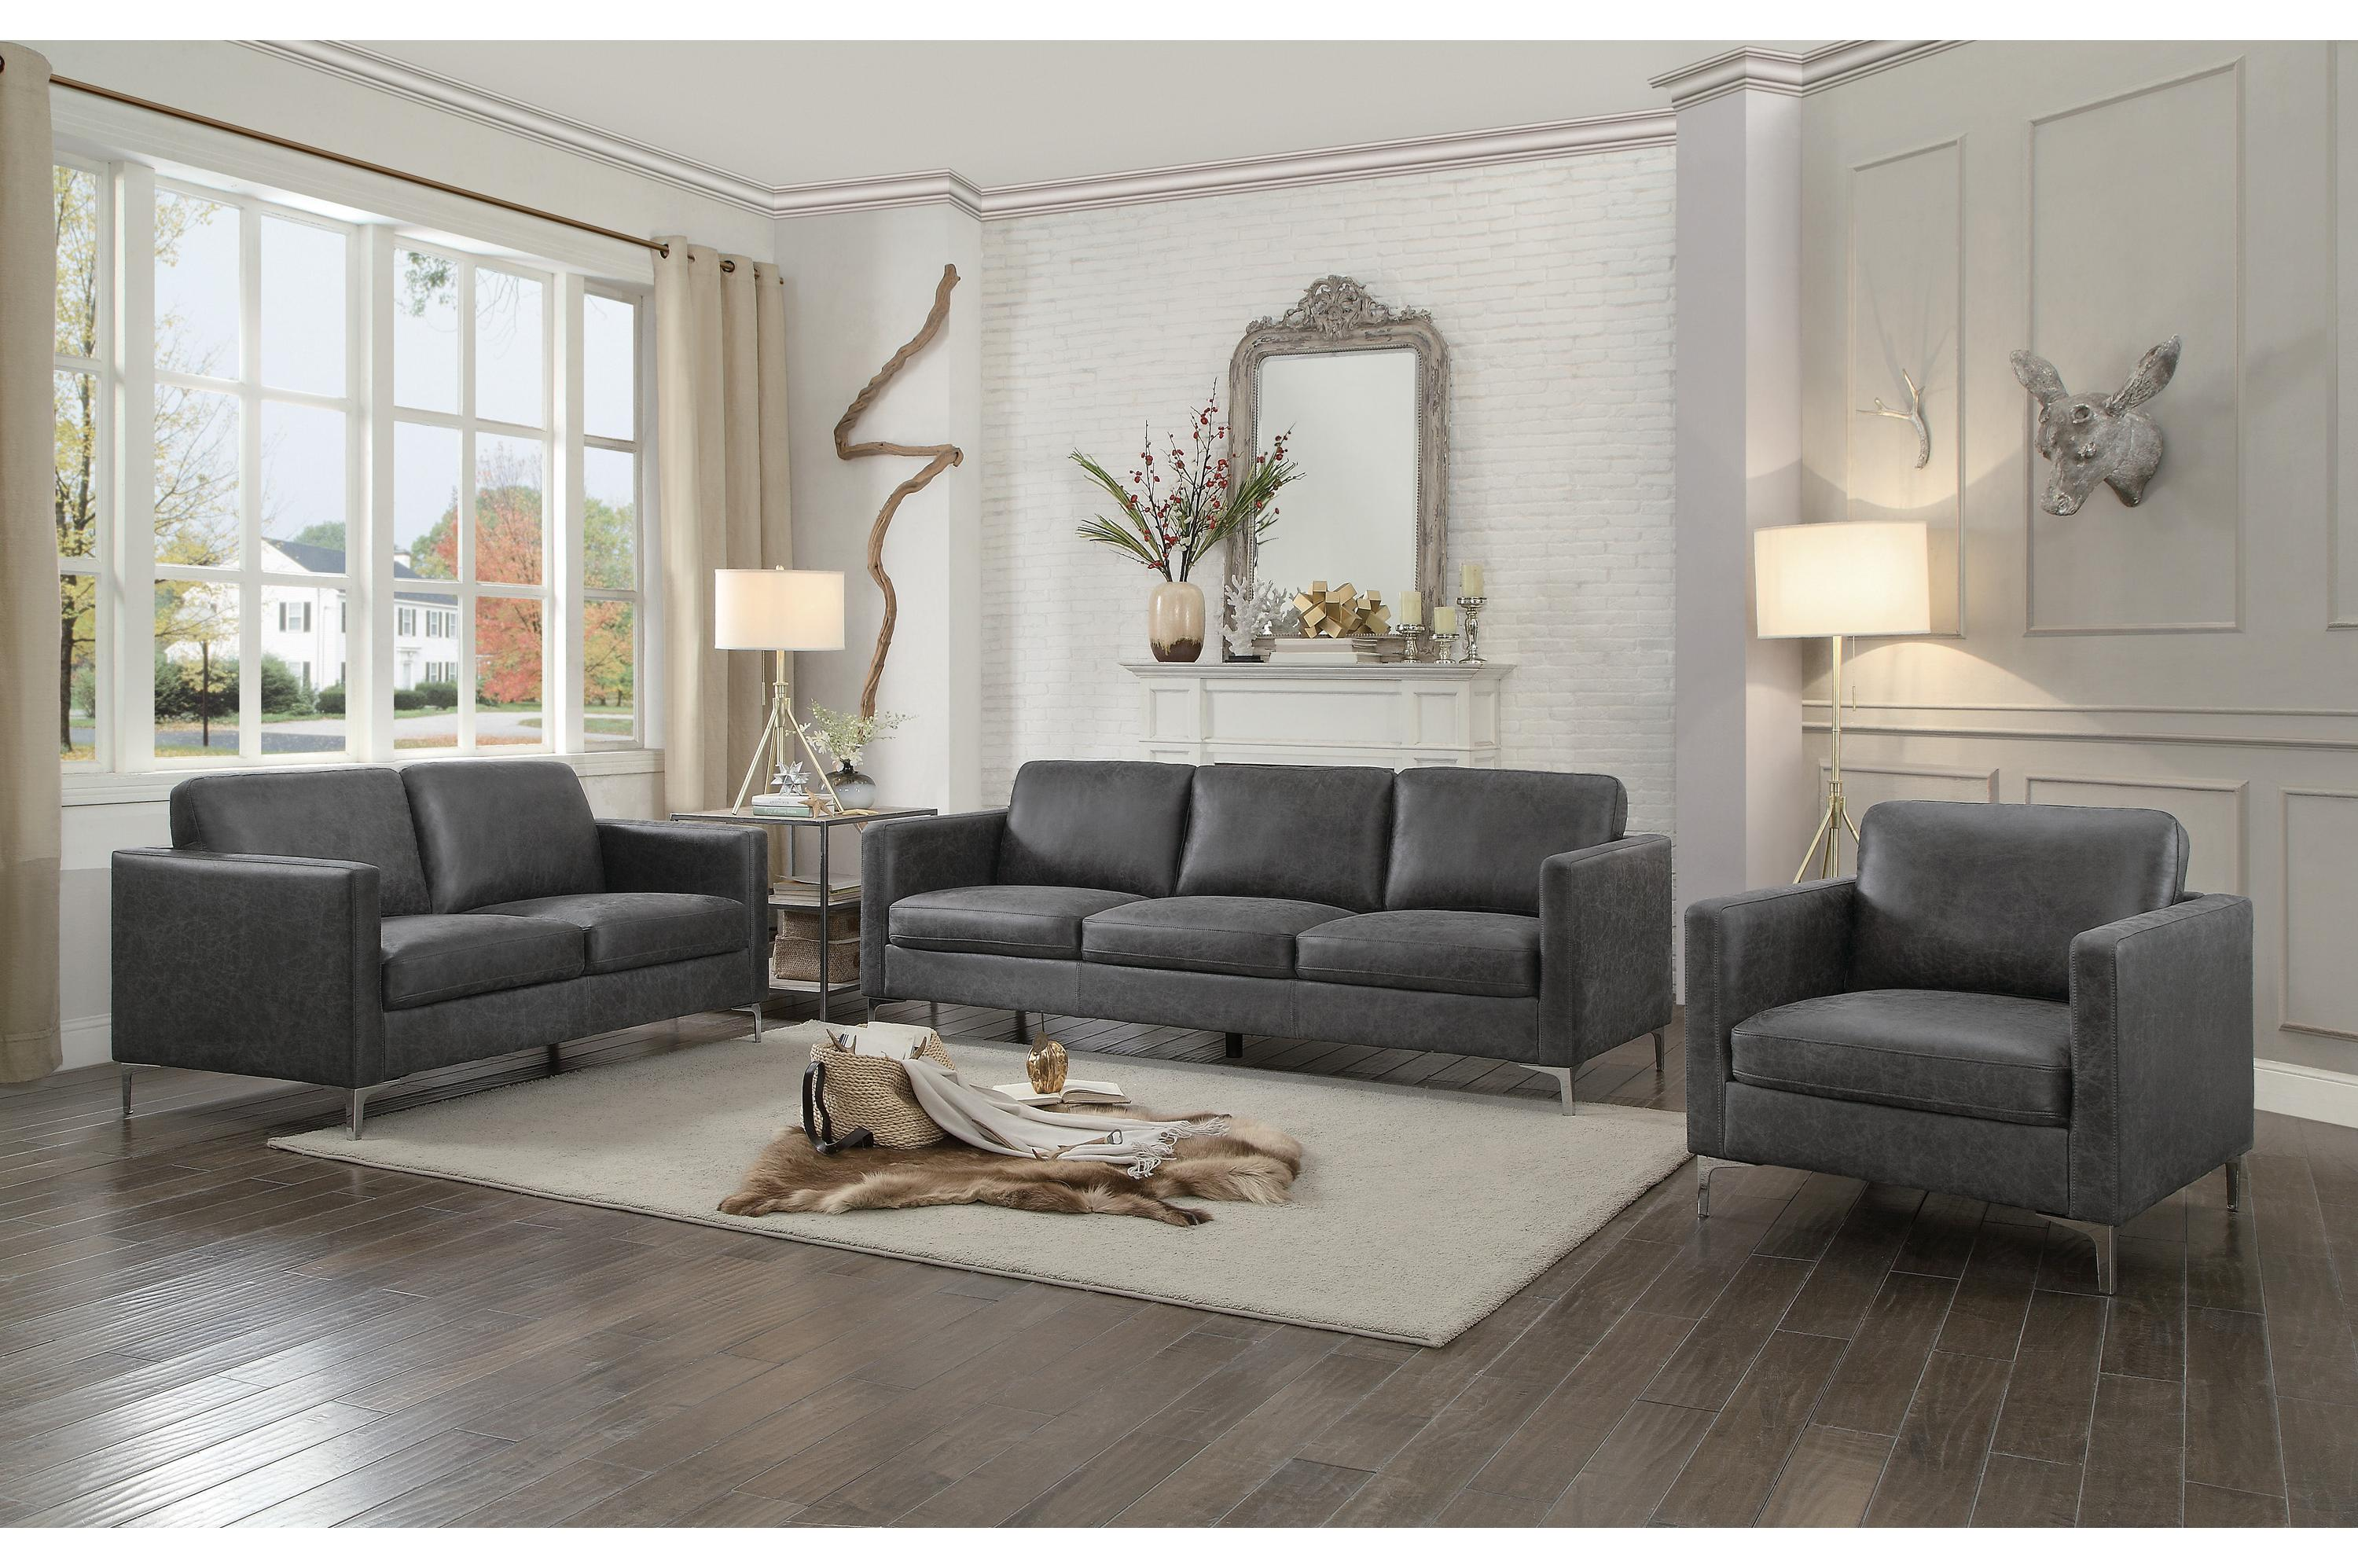 Iniko Collection Las Vegas Furniture Store Modern Home